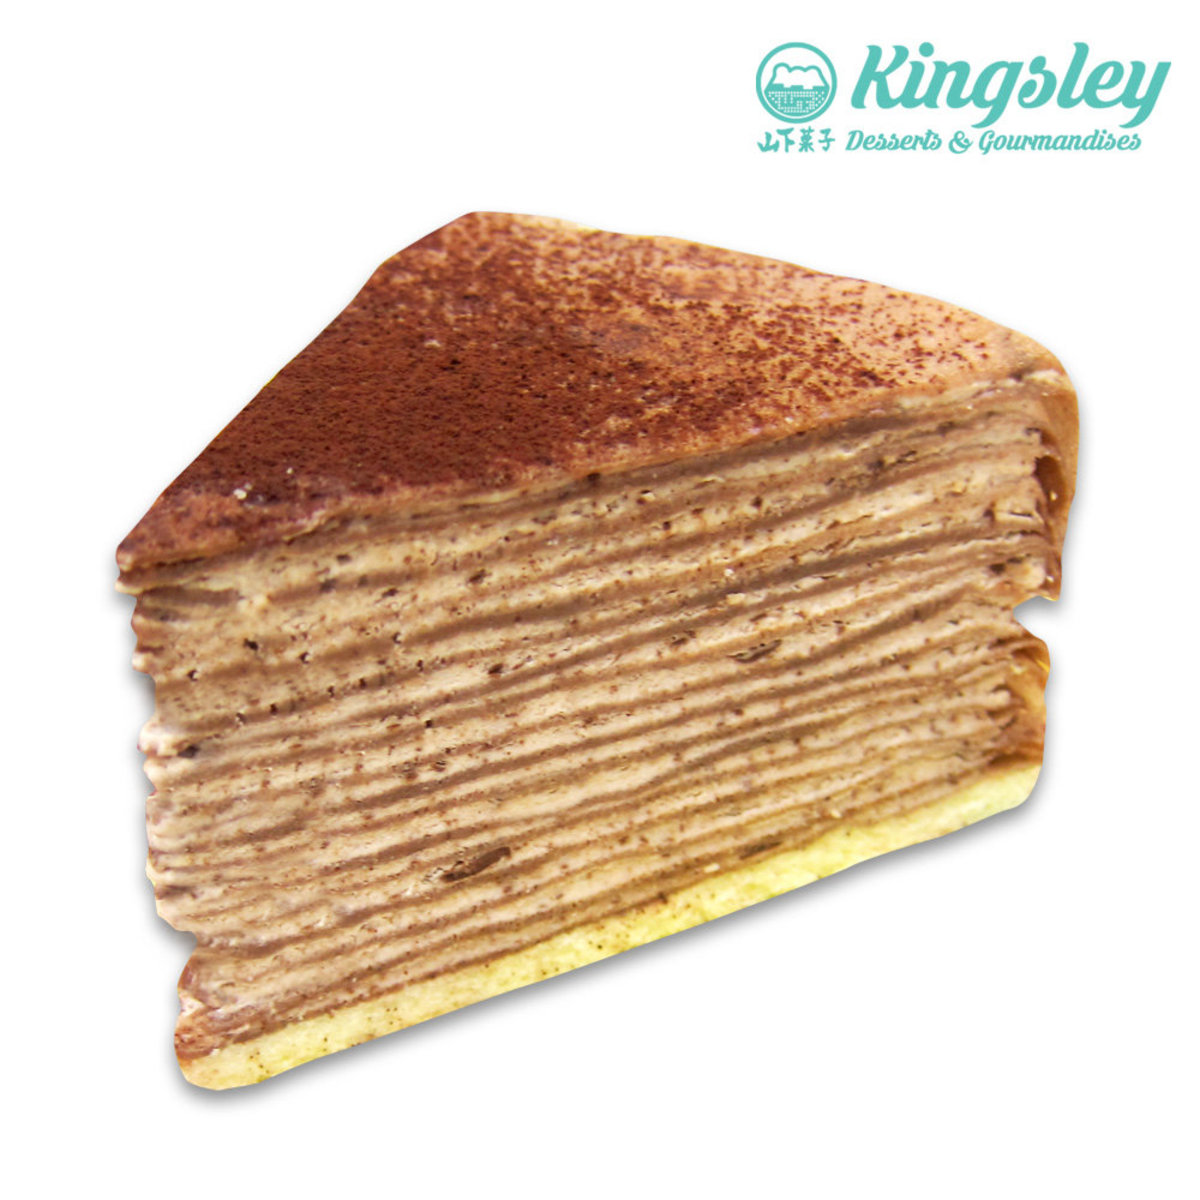 Chocolate Mille Crepe Cake (Whole)Coupon